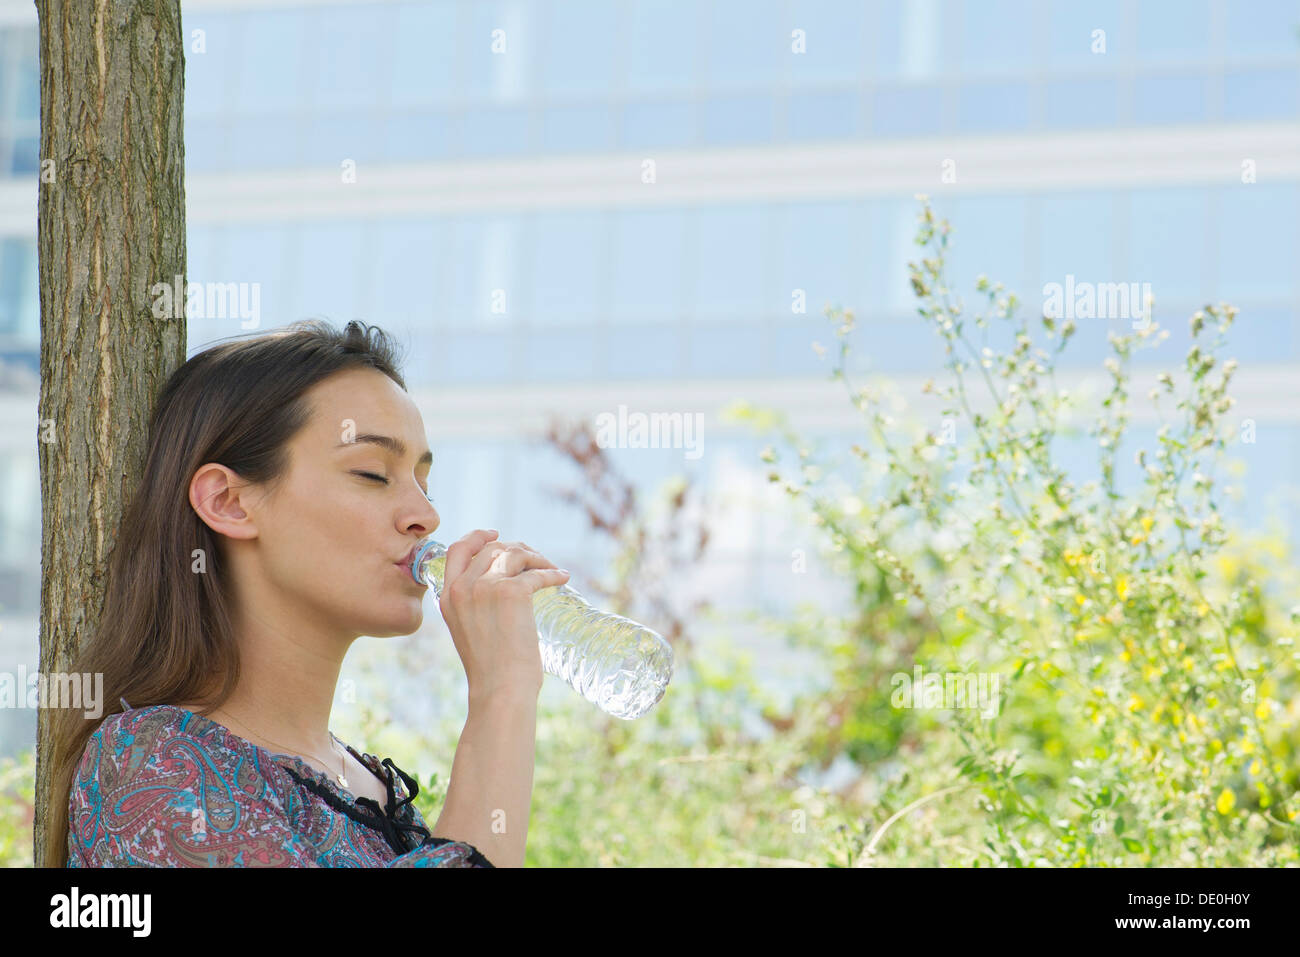 Woman drinking bottled water outdoors - Stock Image